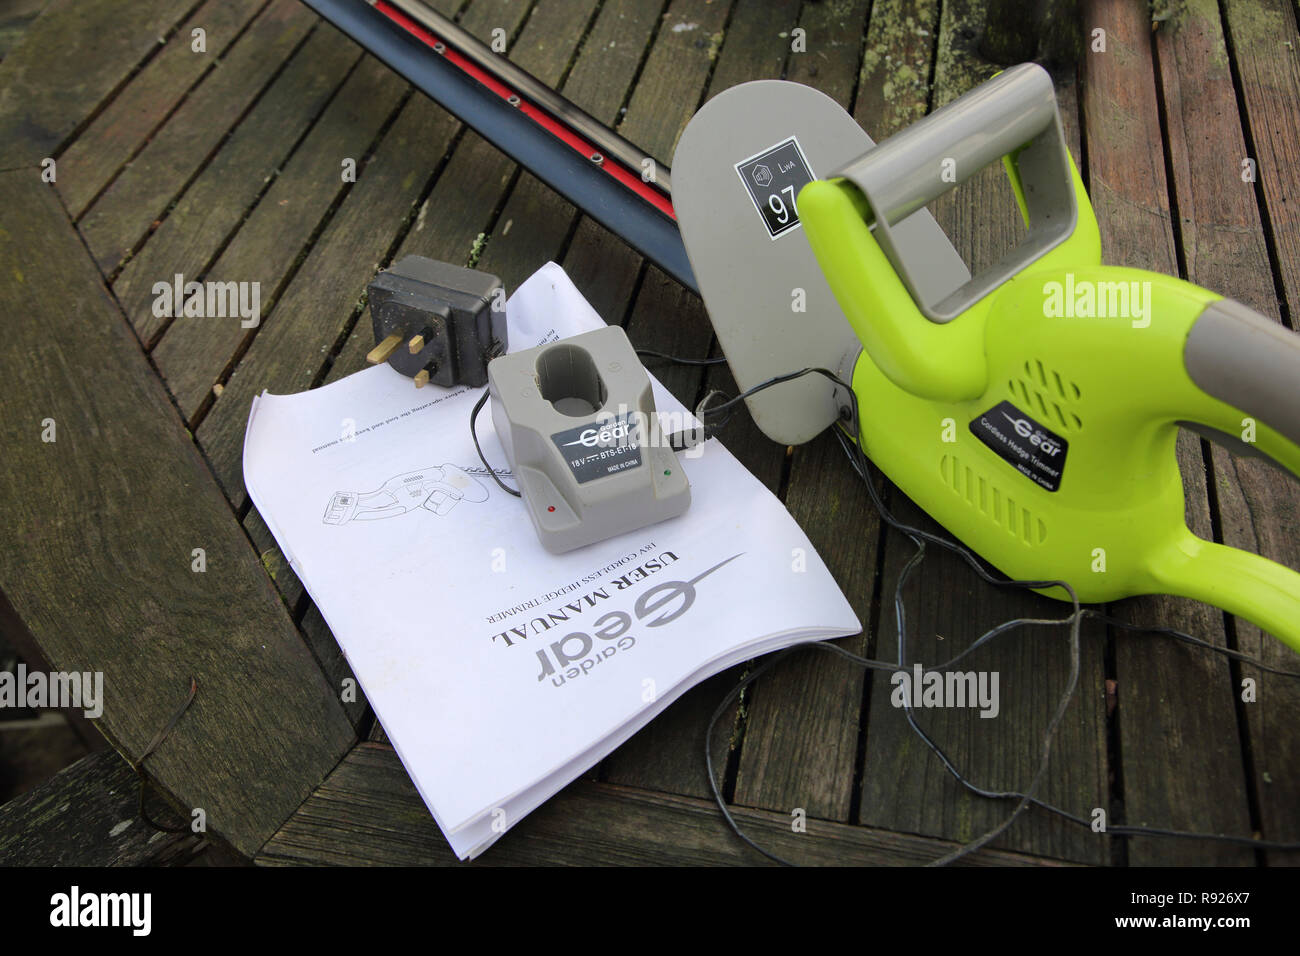 Garden Gear Cordless Hedge Trimmer Charger and User Manual Stock Photo